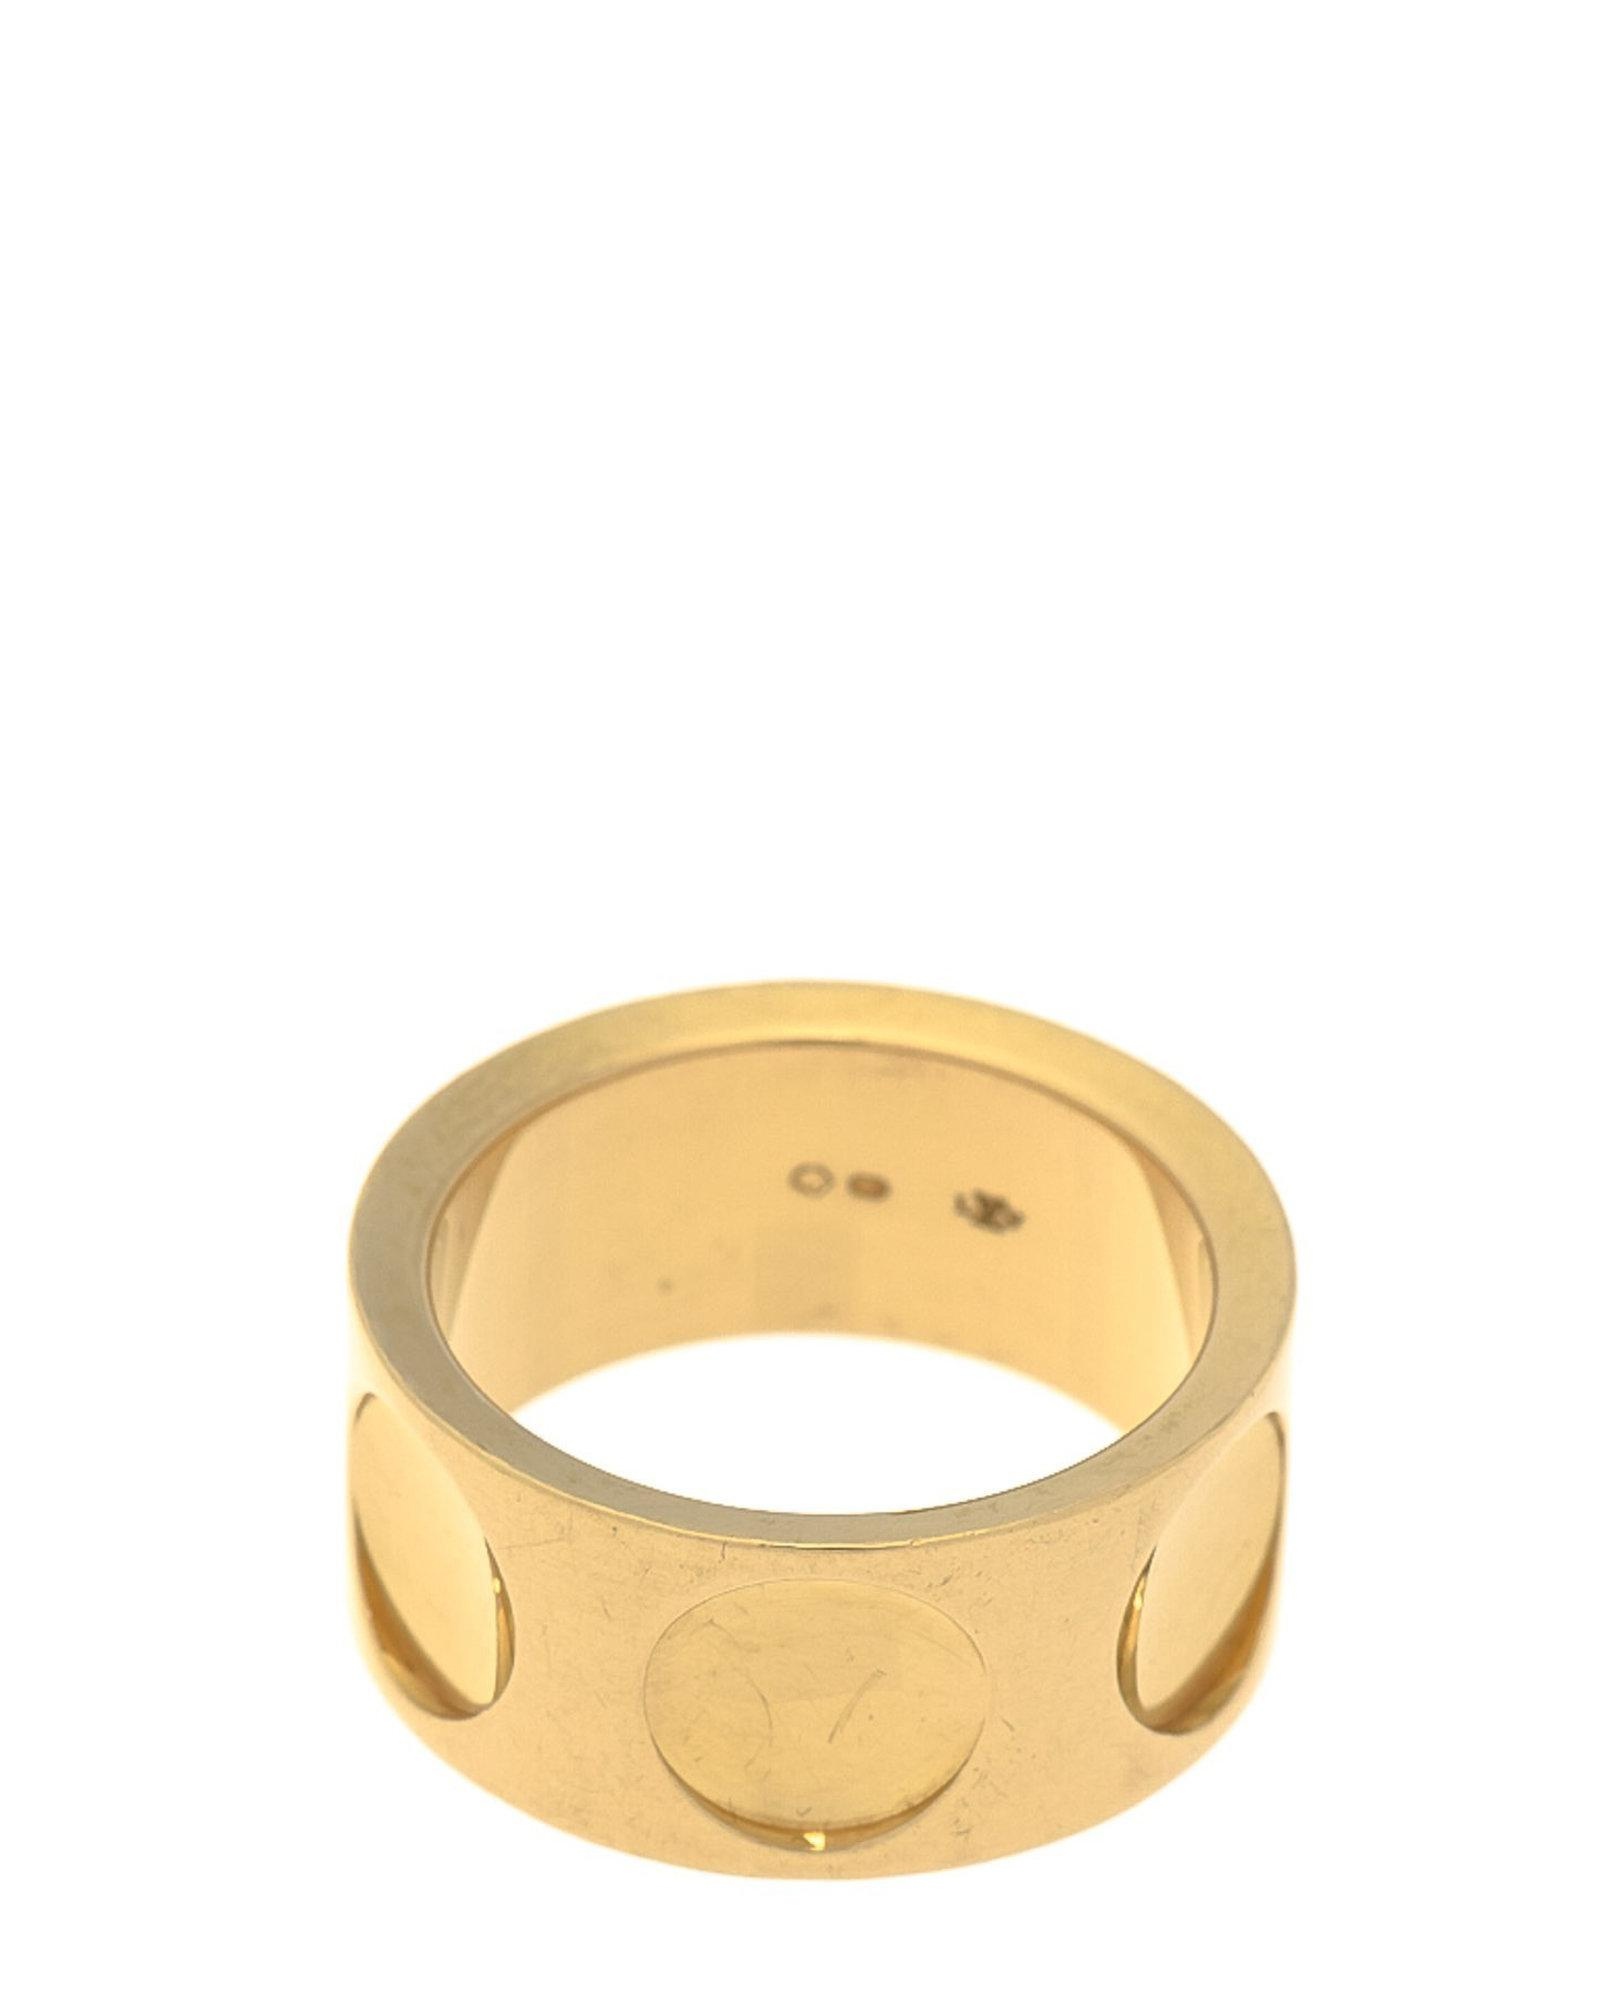 5cff26607b8c Louis Vuitton Empreinte Ring - Vintage in Metallic - Lyst